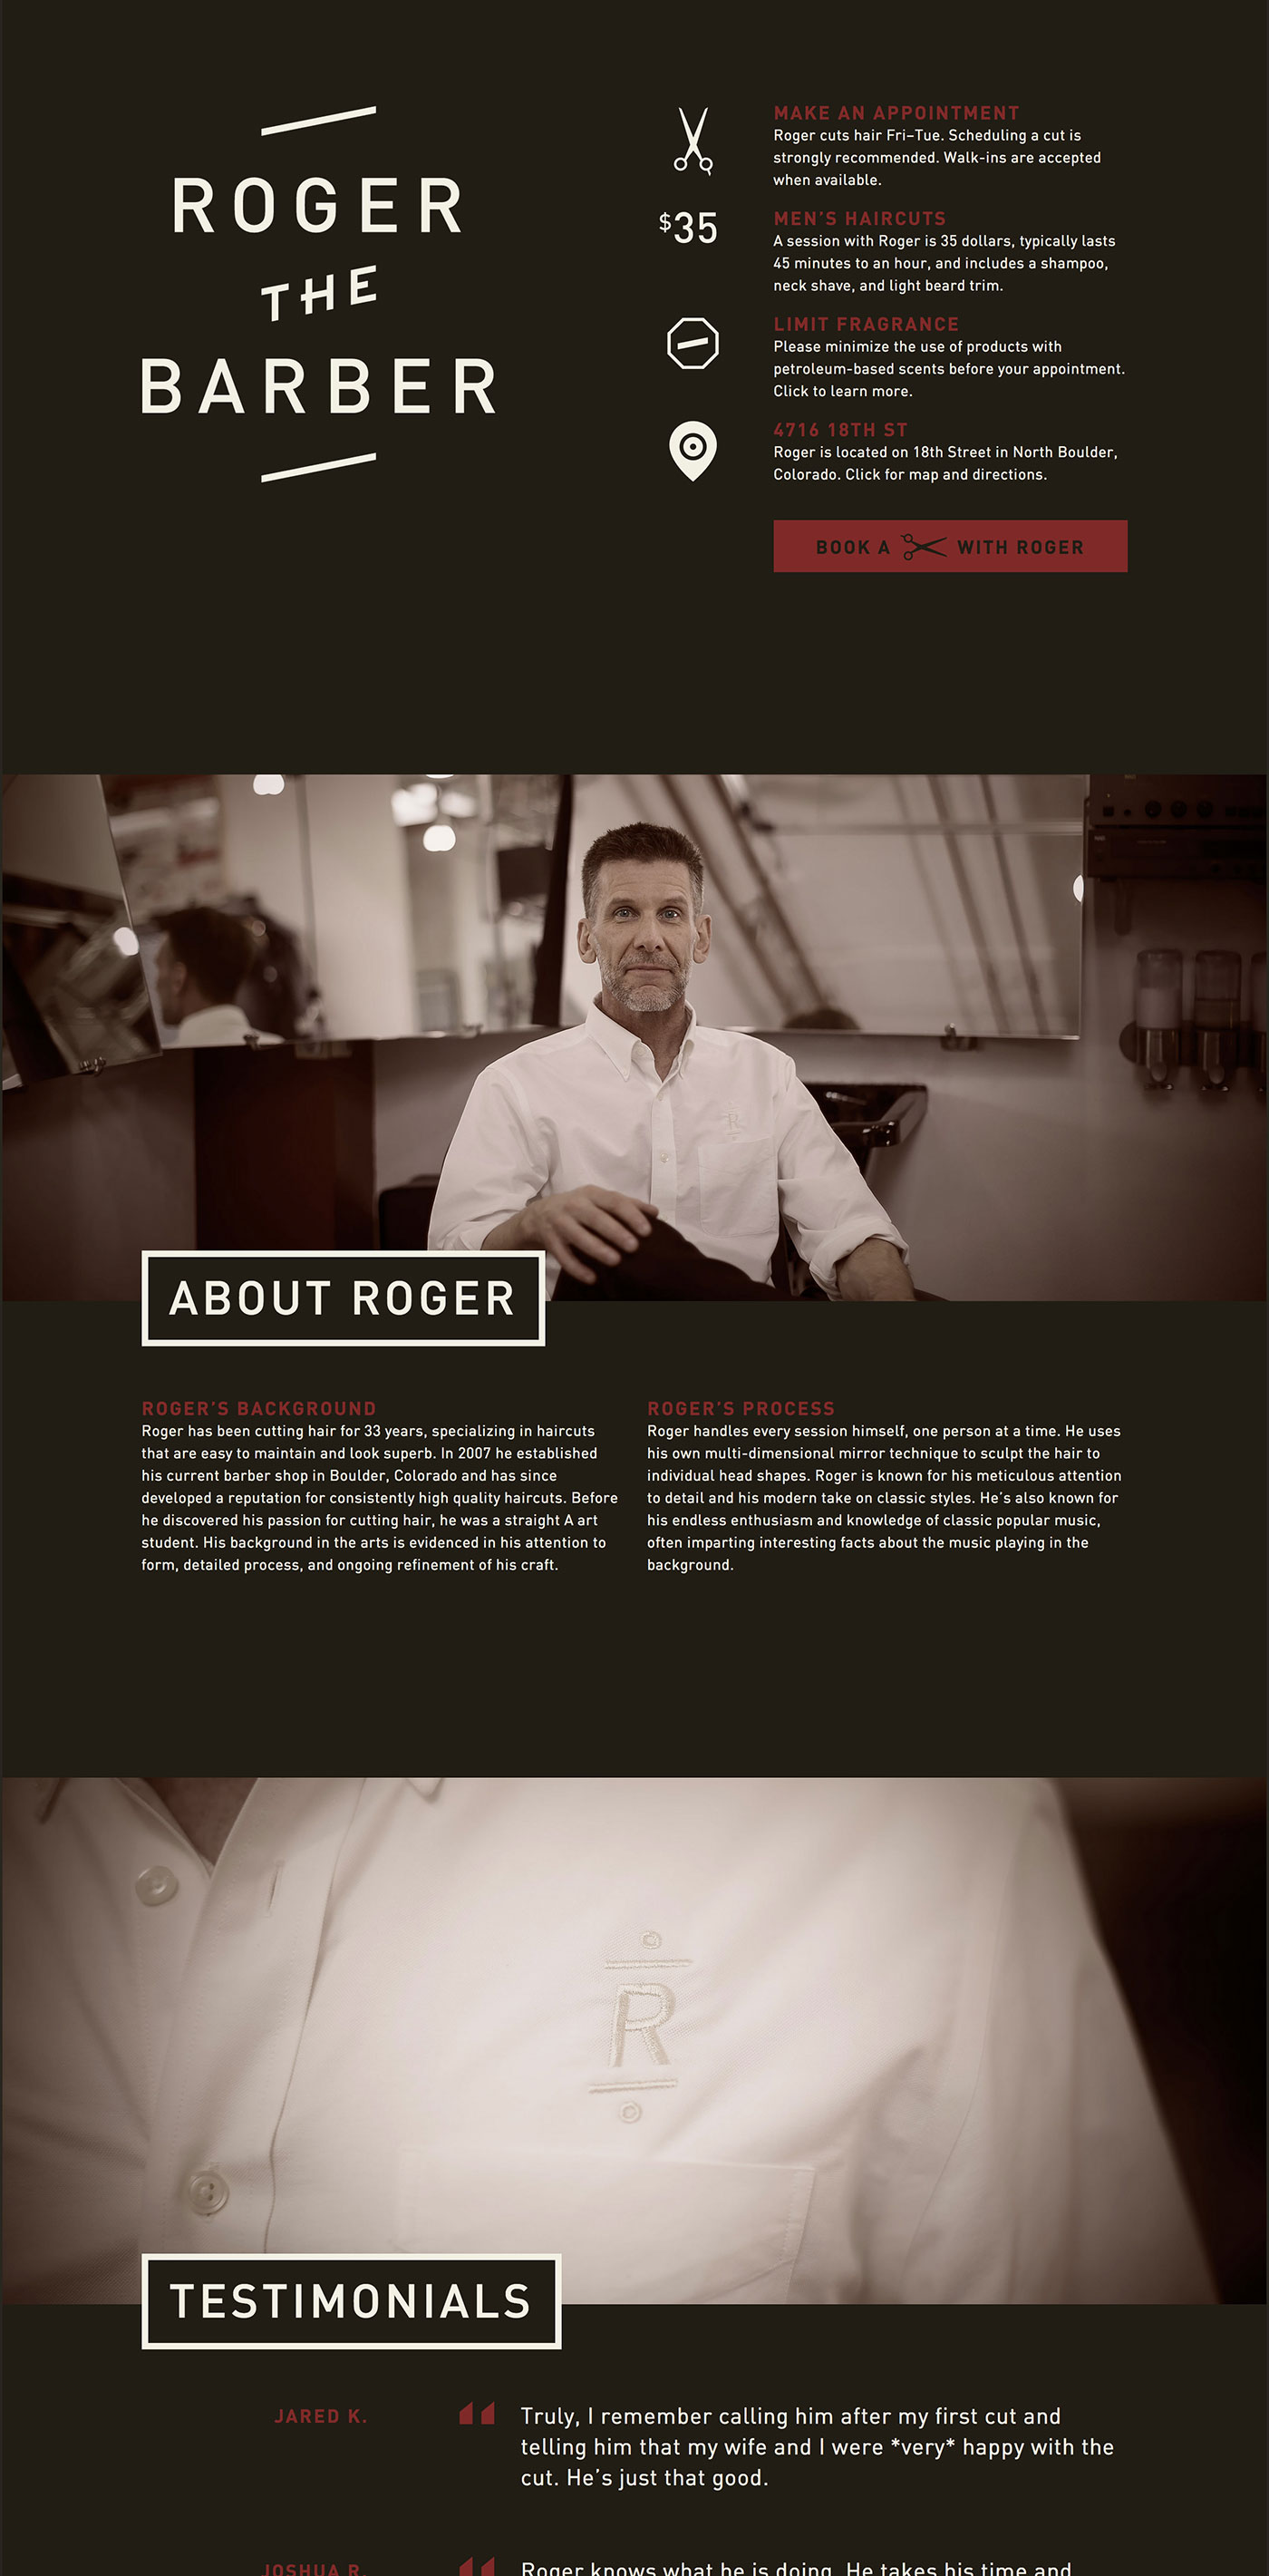 Roger the Barber identity